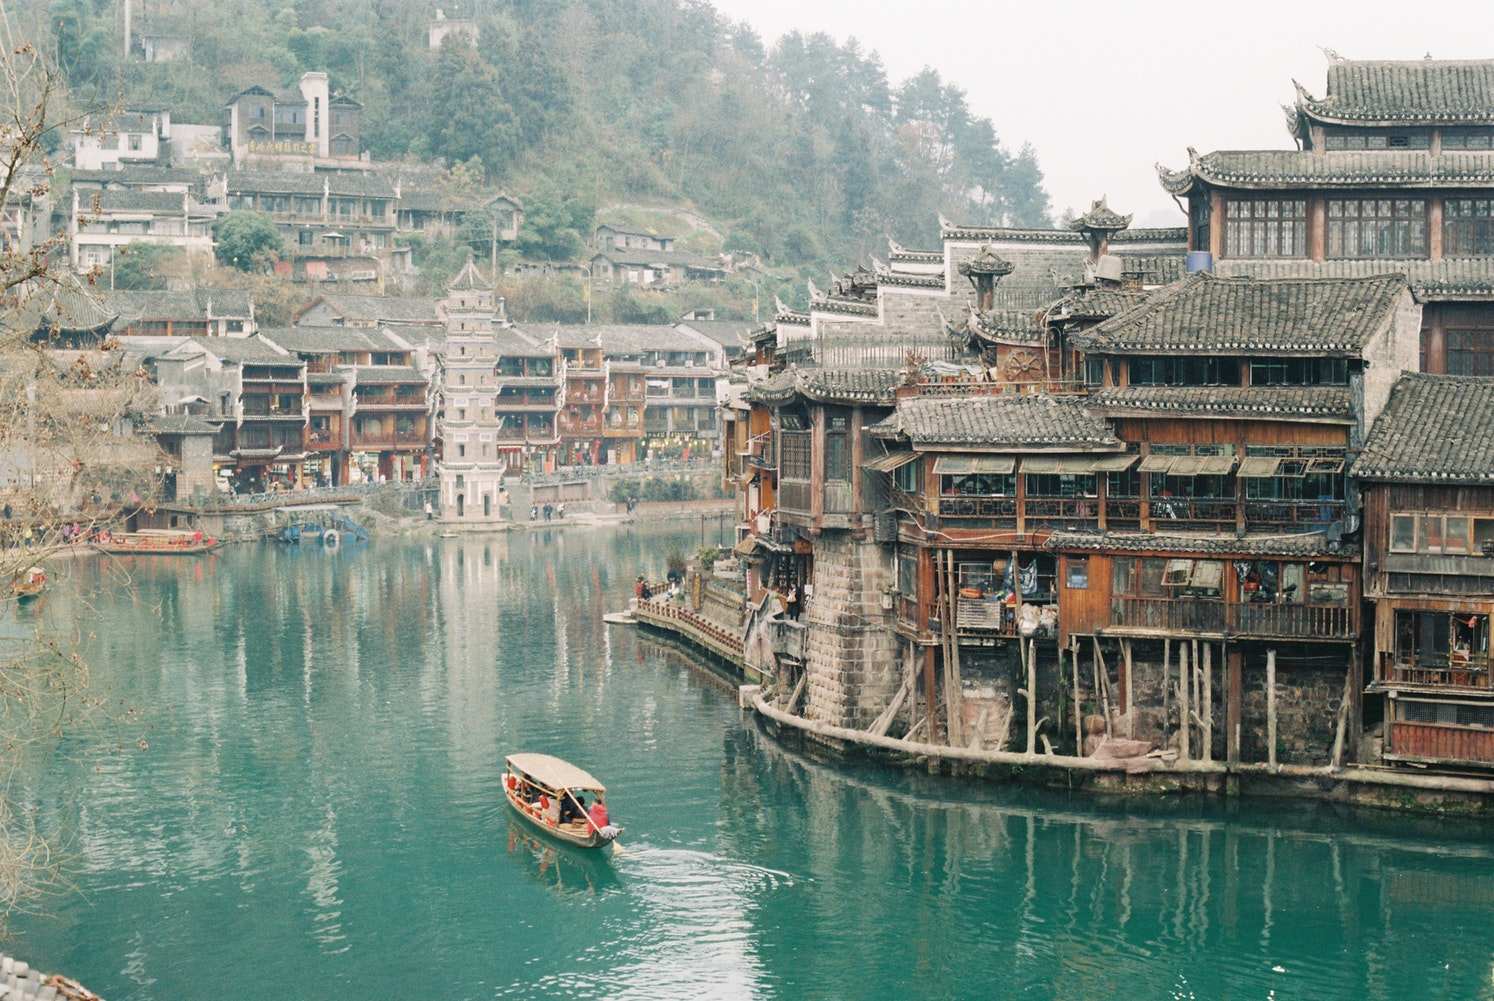 Day 7: Fenghuang - This incredibly preserved and beautiful ancient town will certainly charm you. Stroll the river banks, take a boat ride and enjoy every nook and cranny on the charming streets. To top it off, the food here is as delightful as the views.